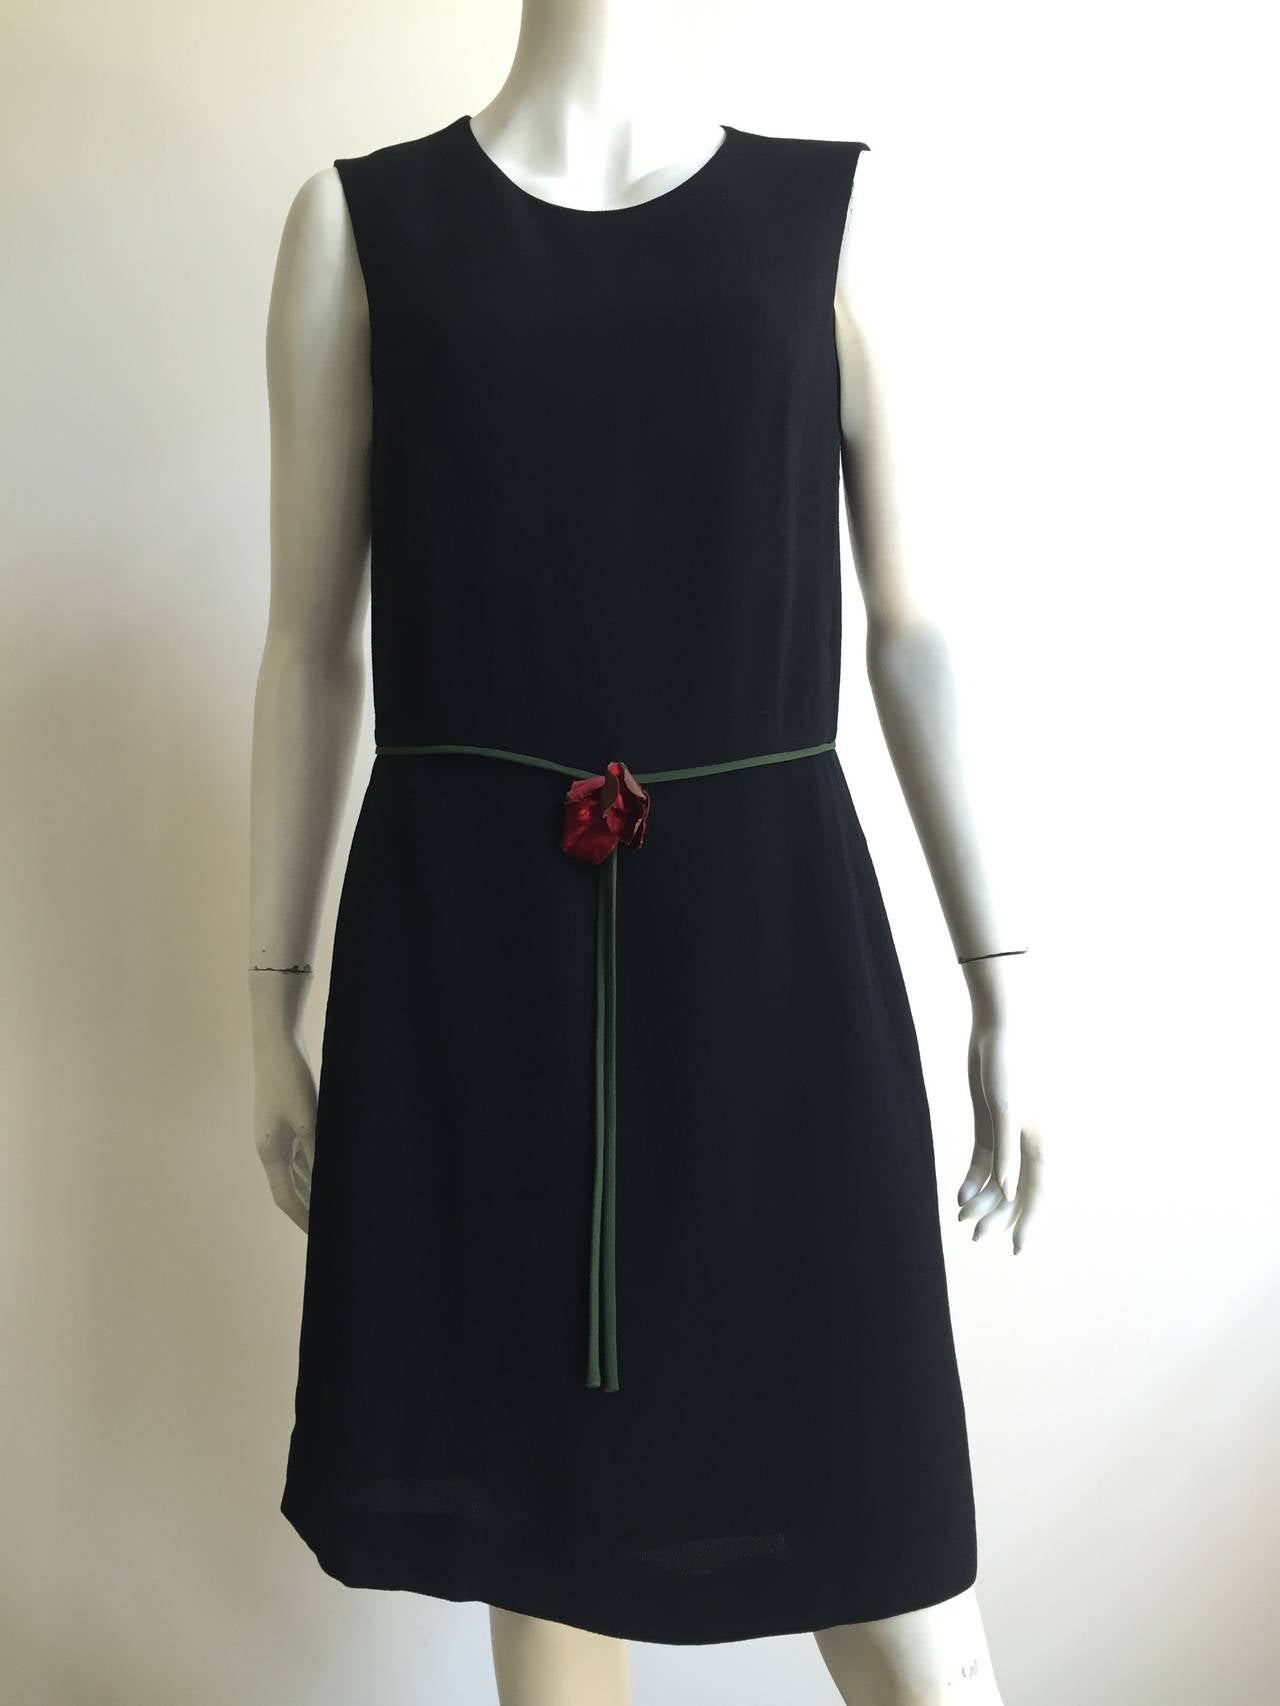 Cheap and Chic by Moschino black wool with rayon shift dress size 12. Please see & use your measuring tape to measure yourself. Red fabric flower at waist that elevates that simple LBD.  Measurements are: 39